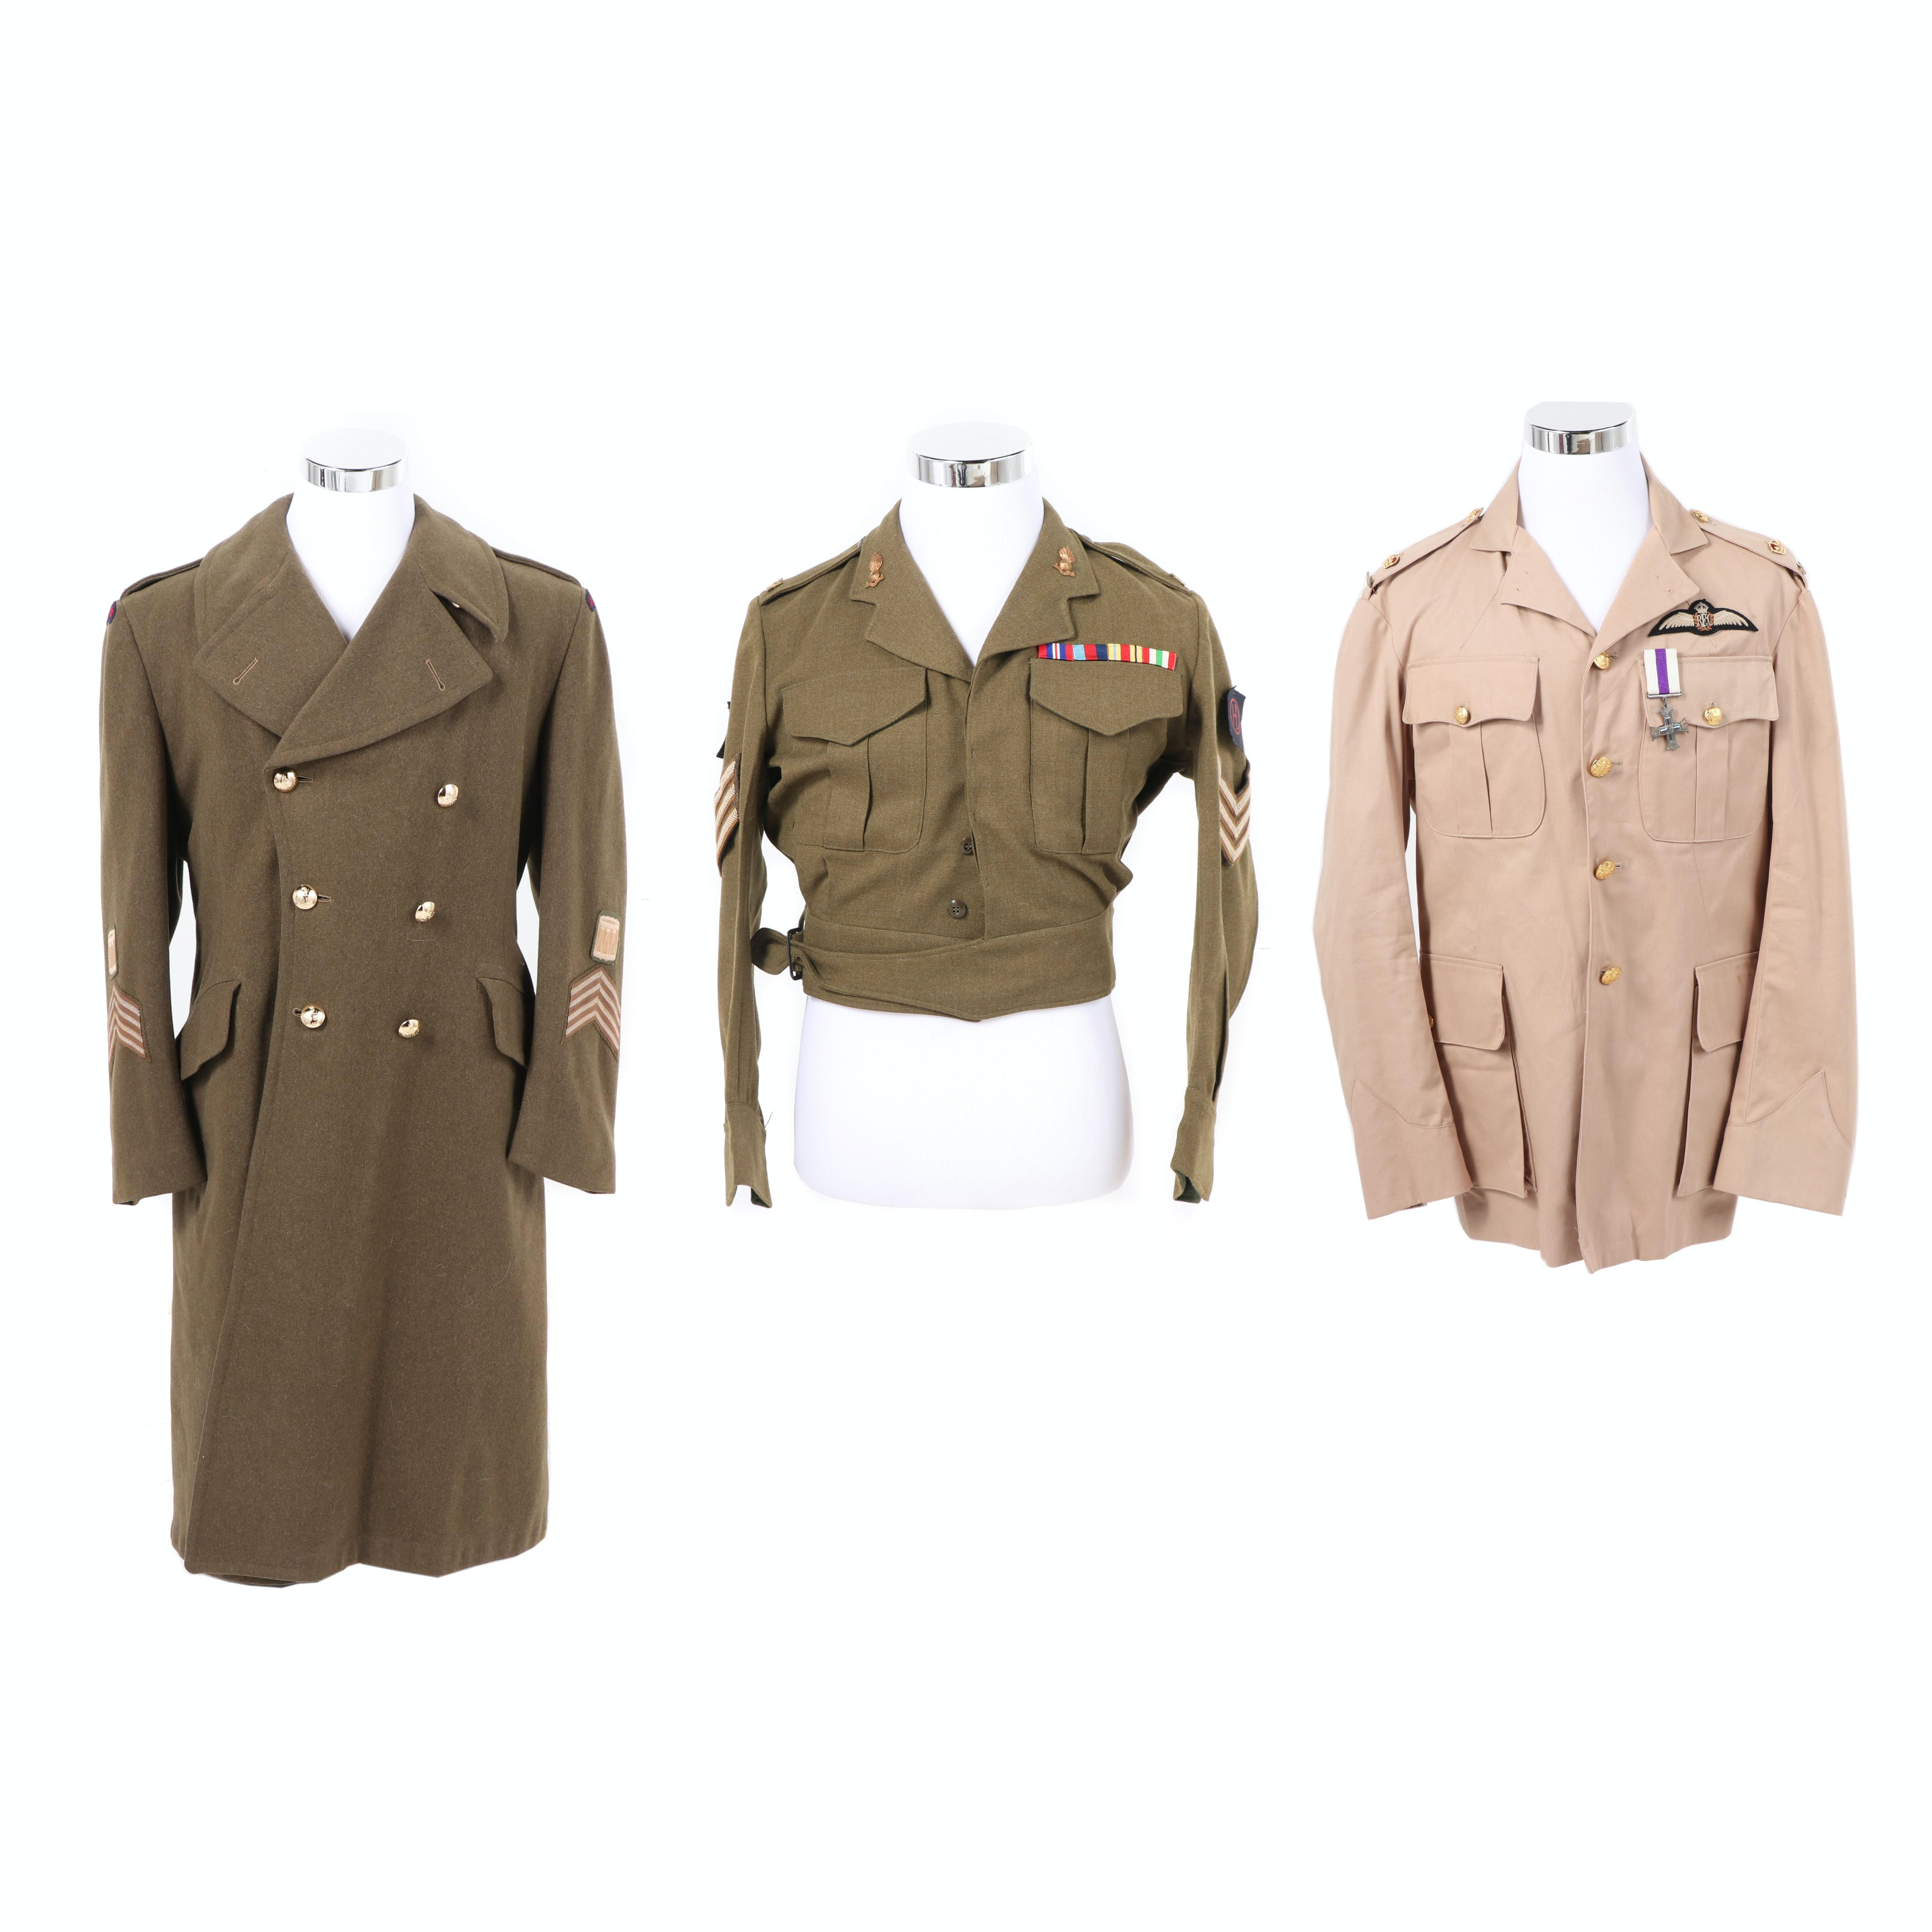 British-Canadian Military Style Jackets with 48th Highlanders of Canada Coat